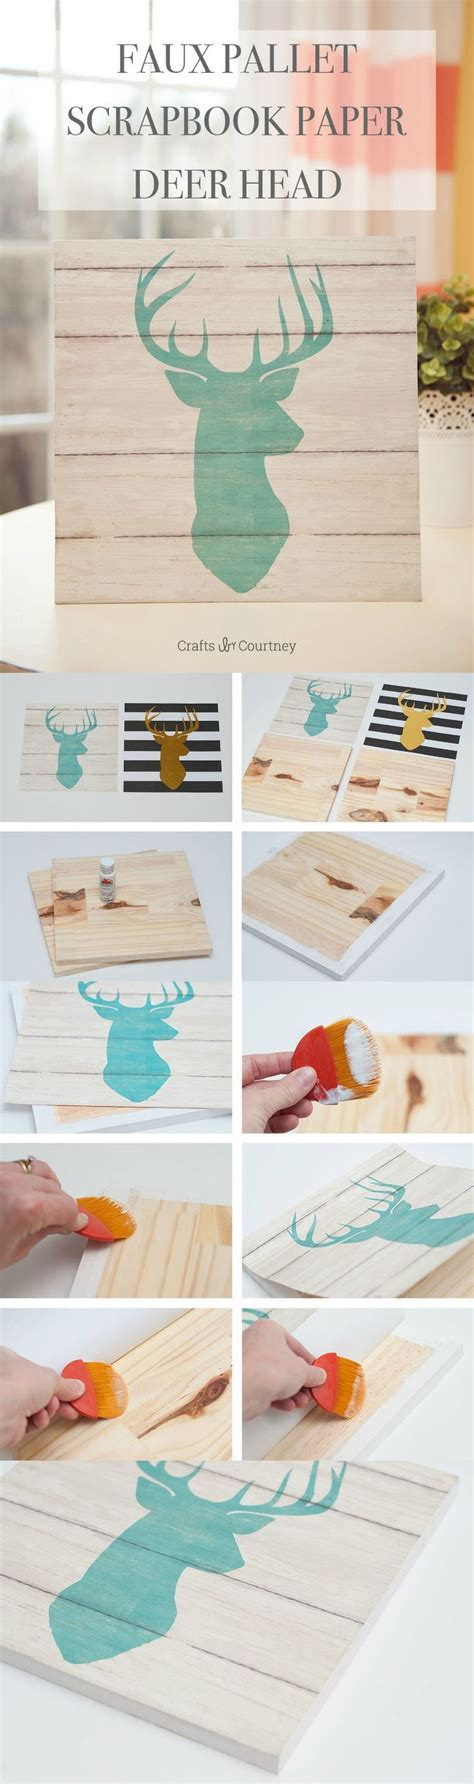 Wood Used To Make Paper - decor hacks use cool scrapbook paper and cut pieces of